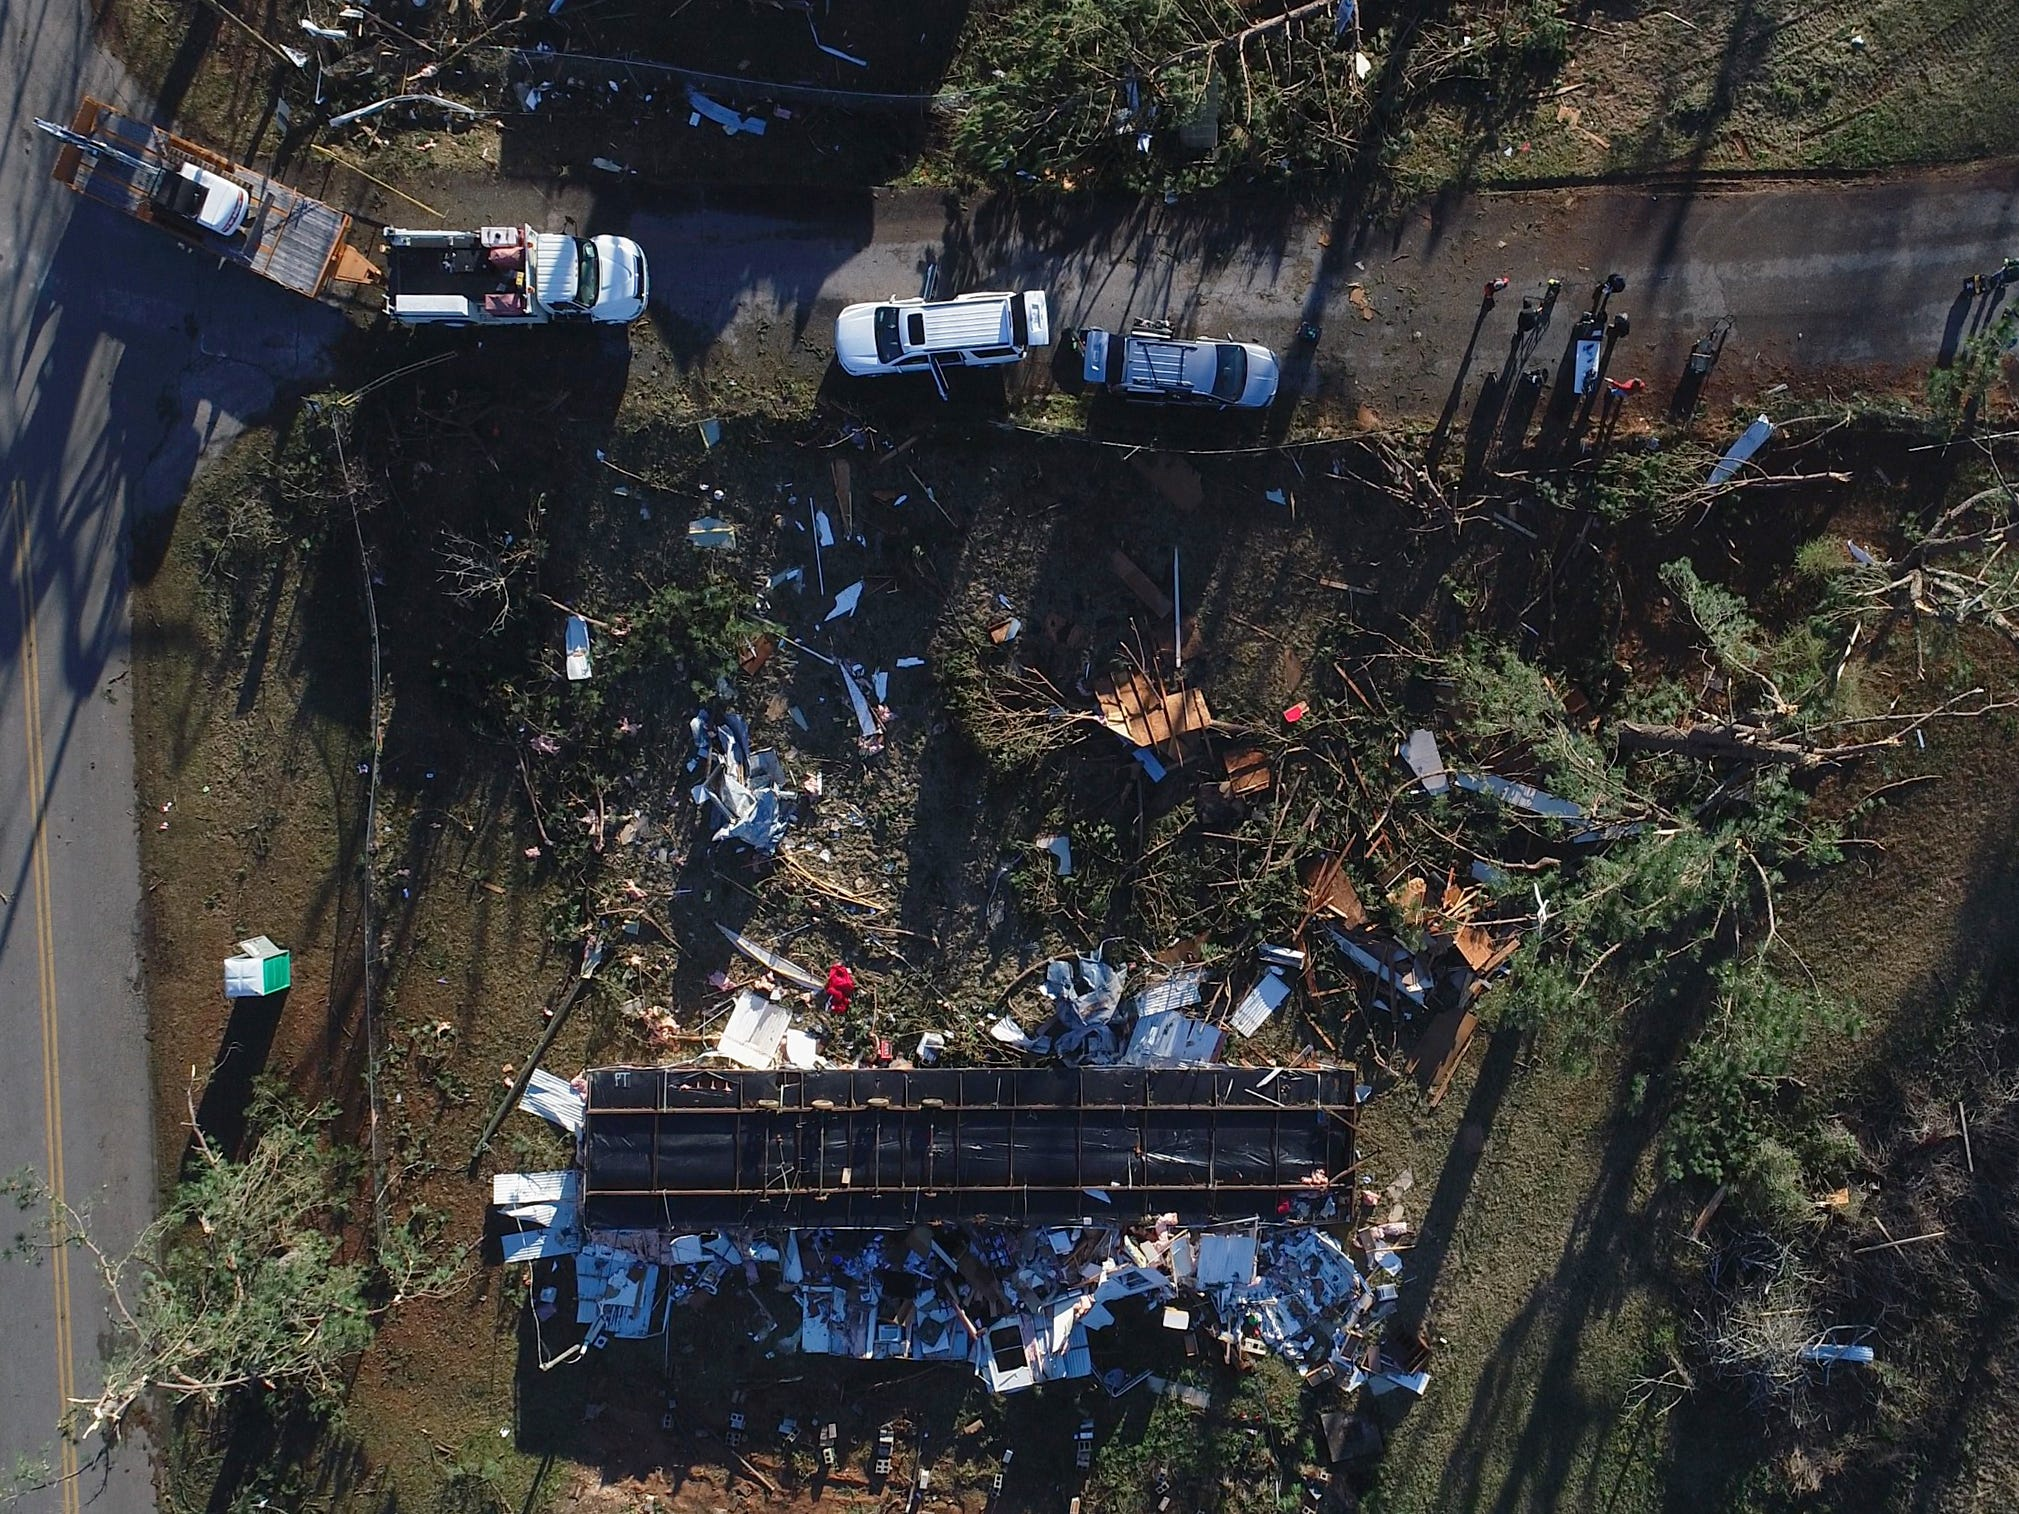 The remains of a tornado damaged home in Smiths Station, Ala. on March 5, 2019.